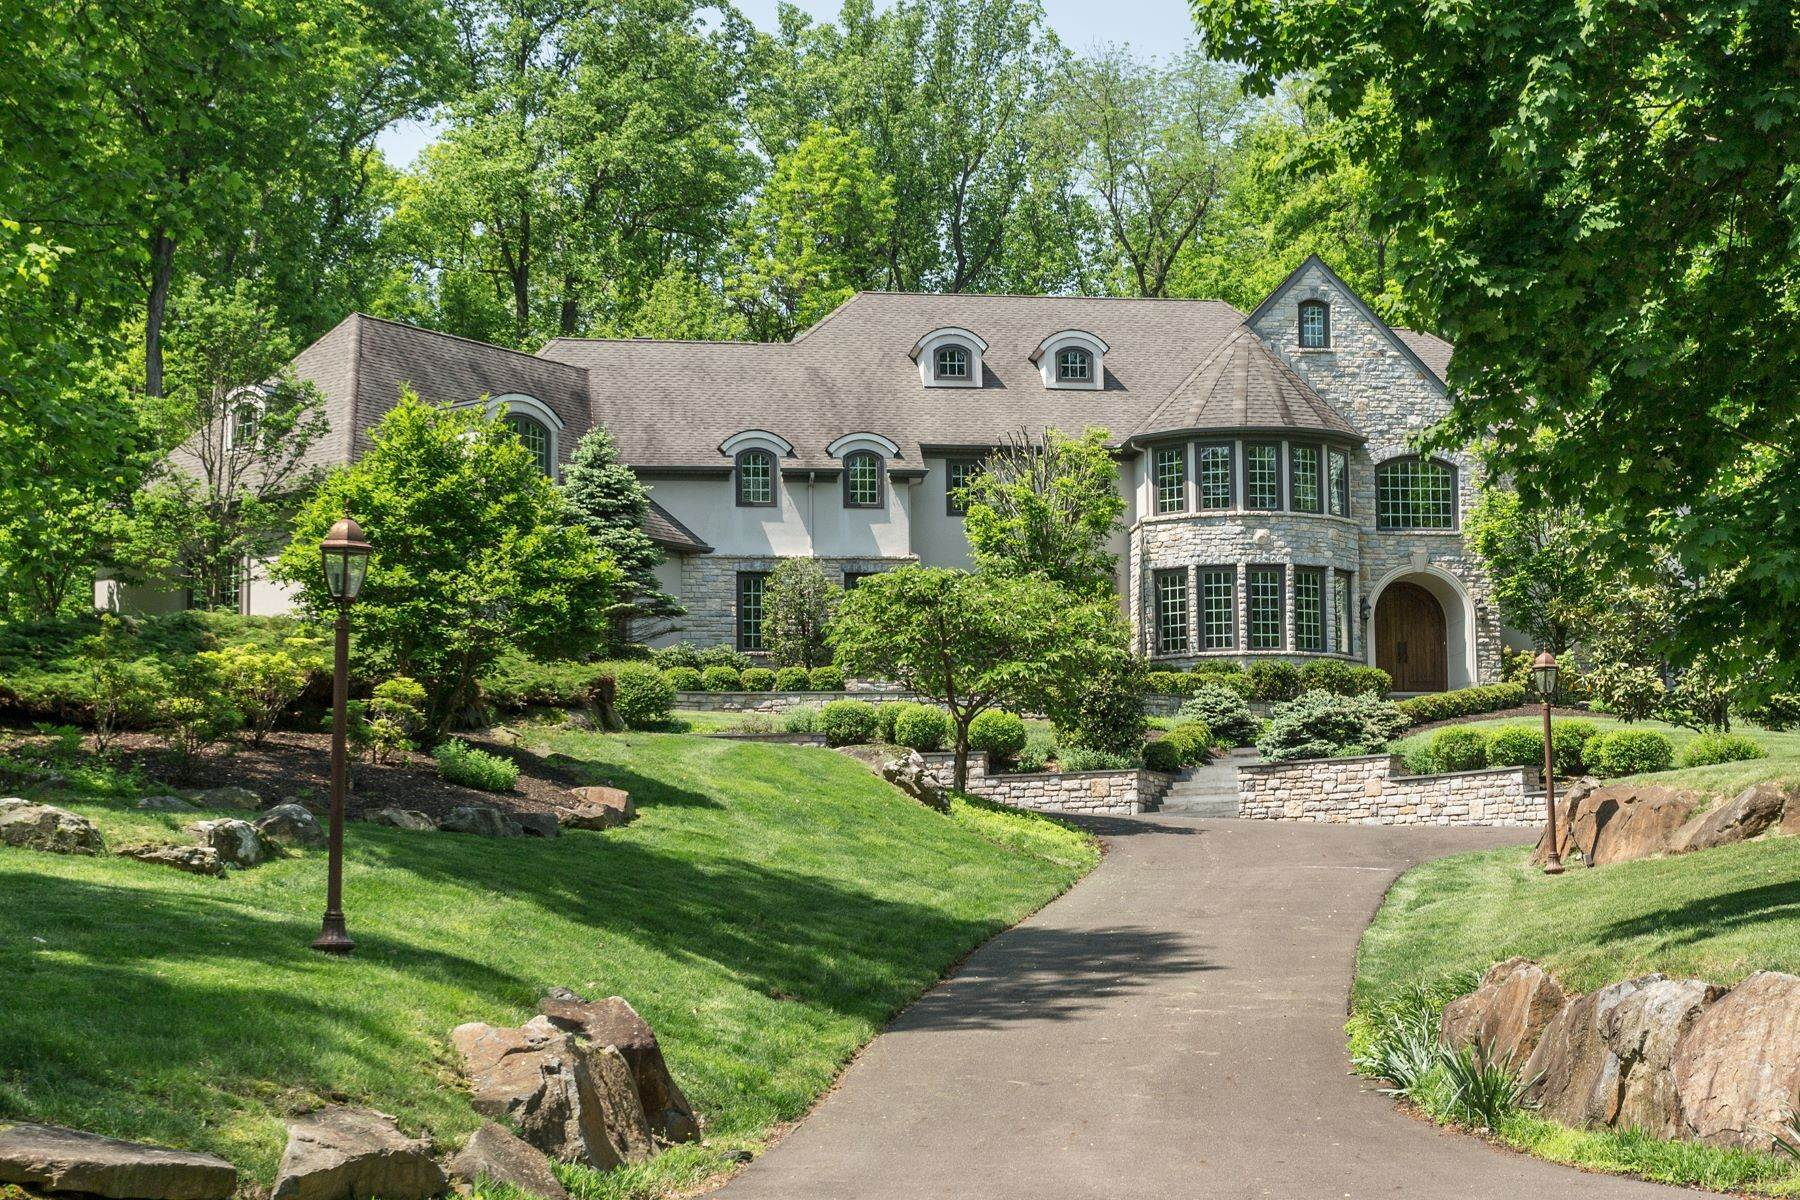 Single Family Homes for Sale at Custom Home in Rockwood 403 ROCKWOOD PATH New Hope, Pennsylvania 18938 United States